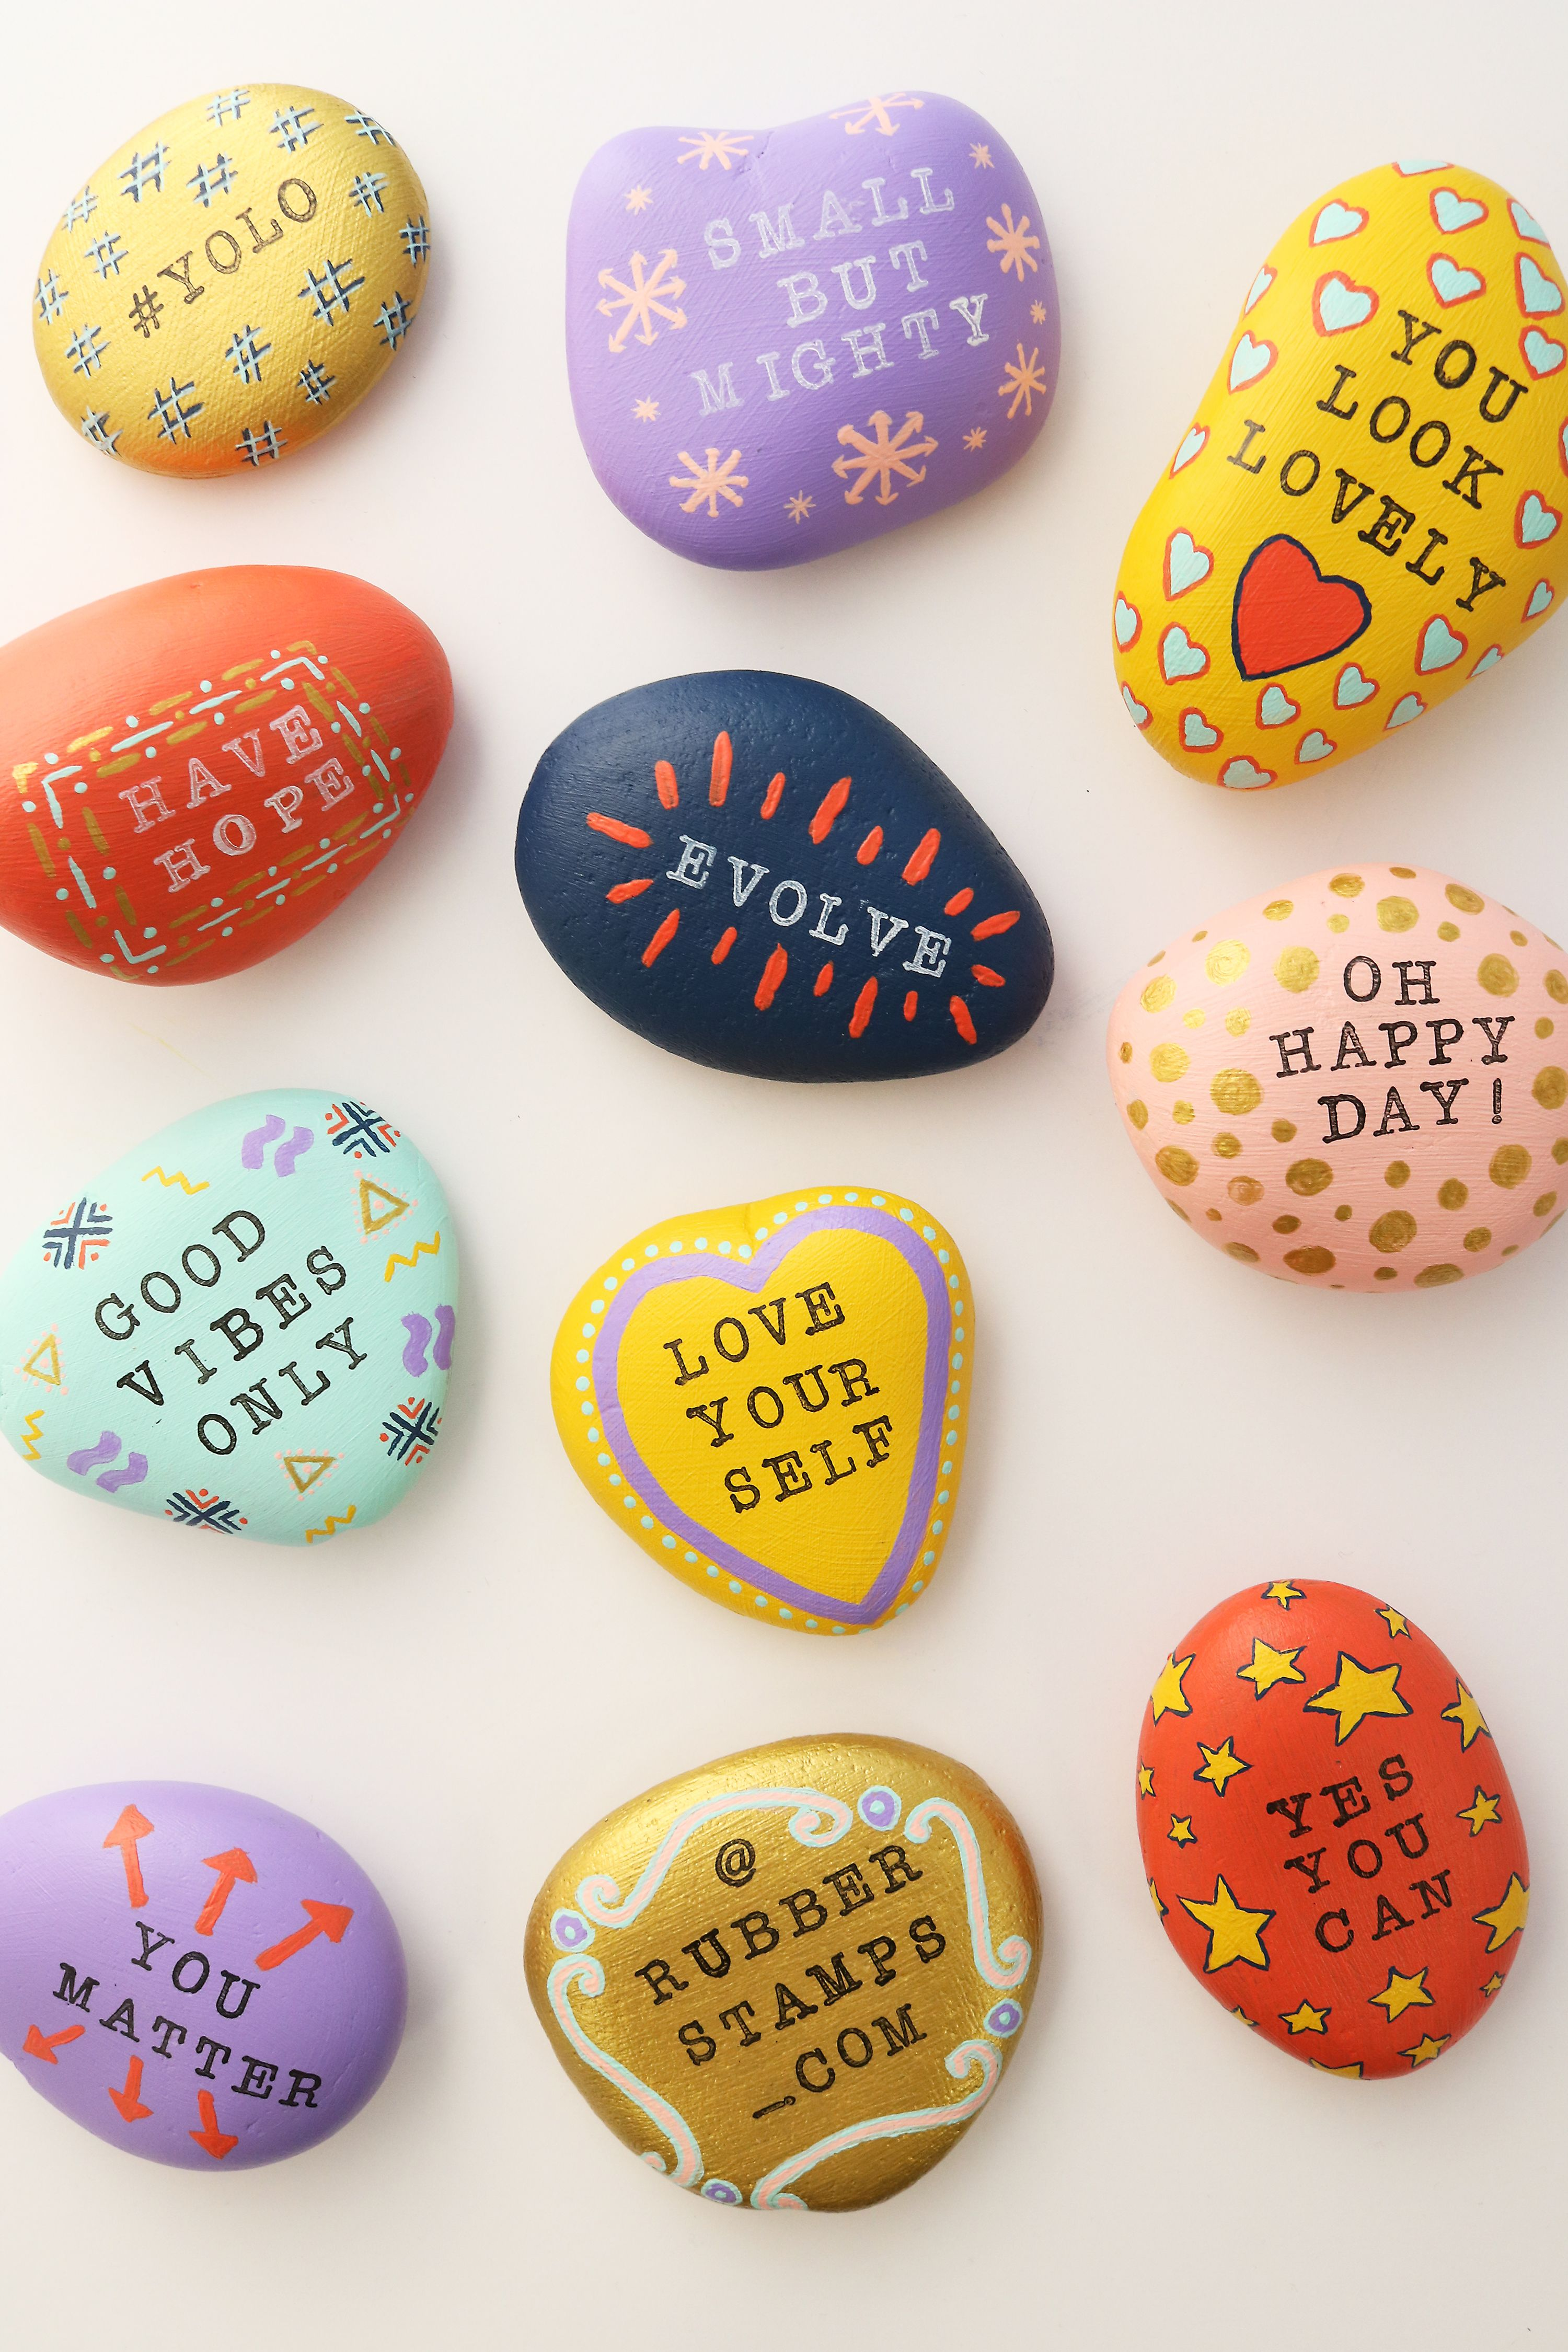 Photo of The Kindness Rocks Project